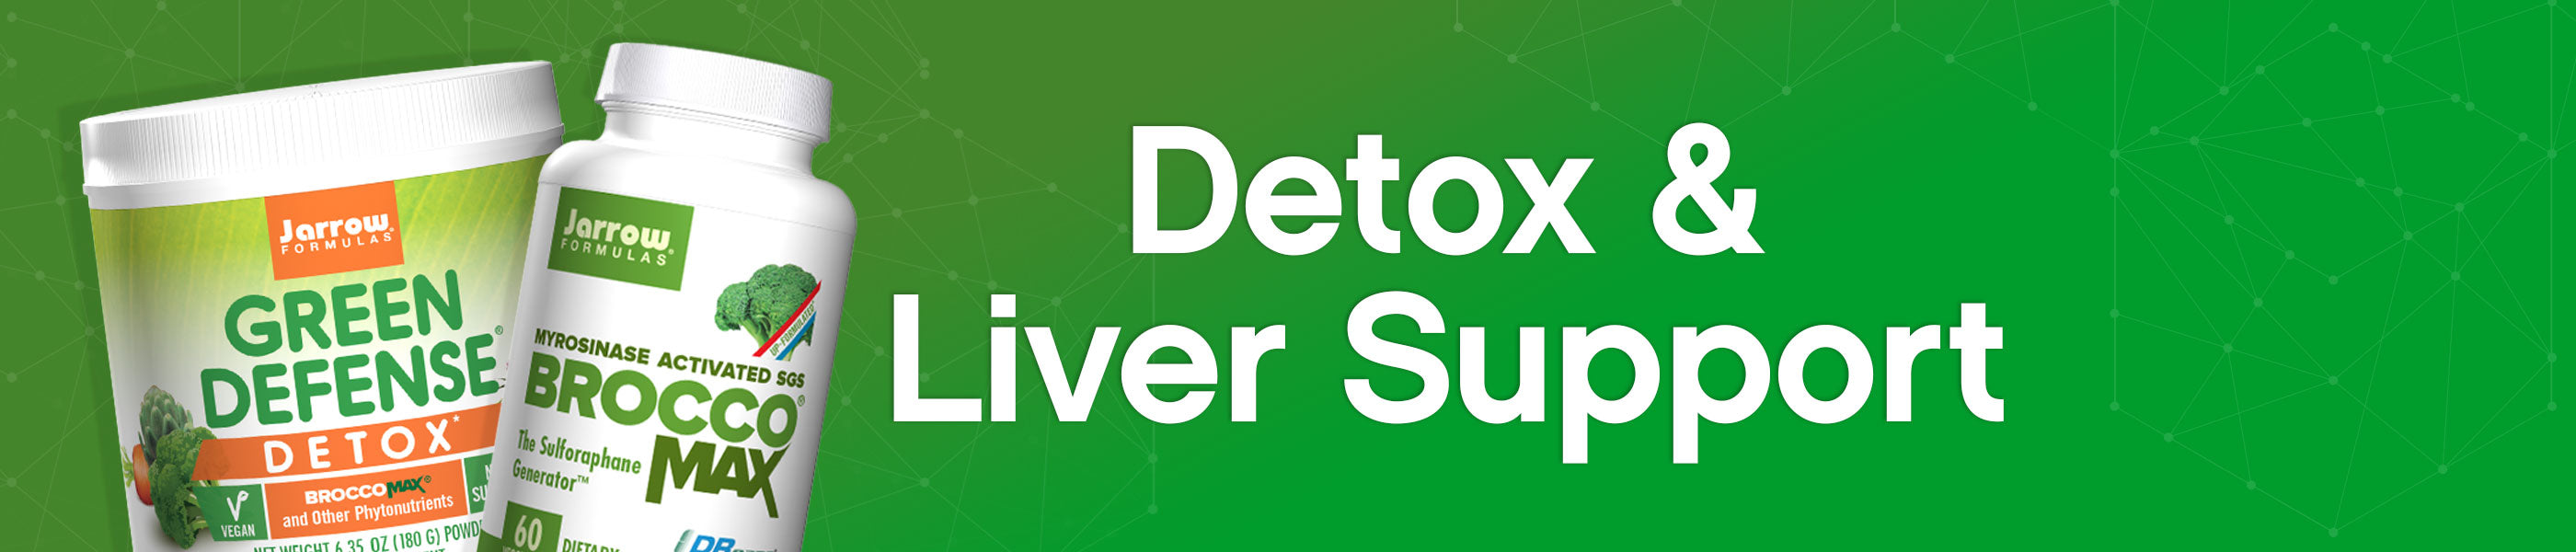 Detox & Liver Support header image